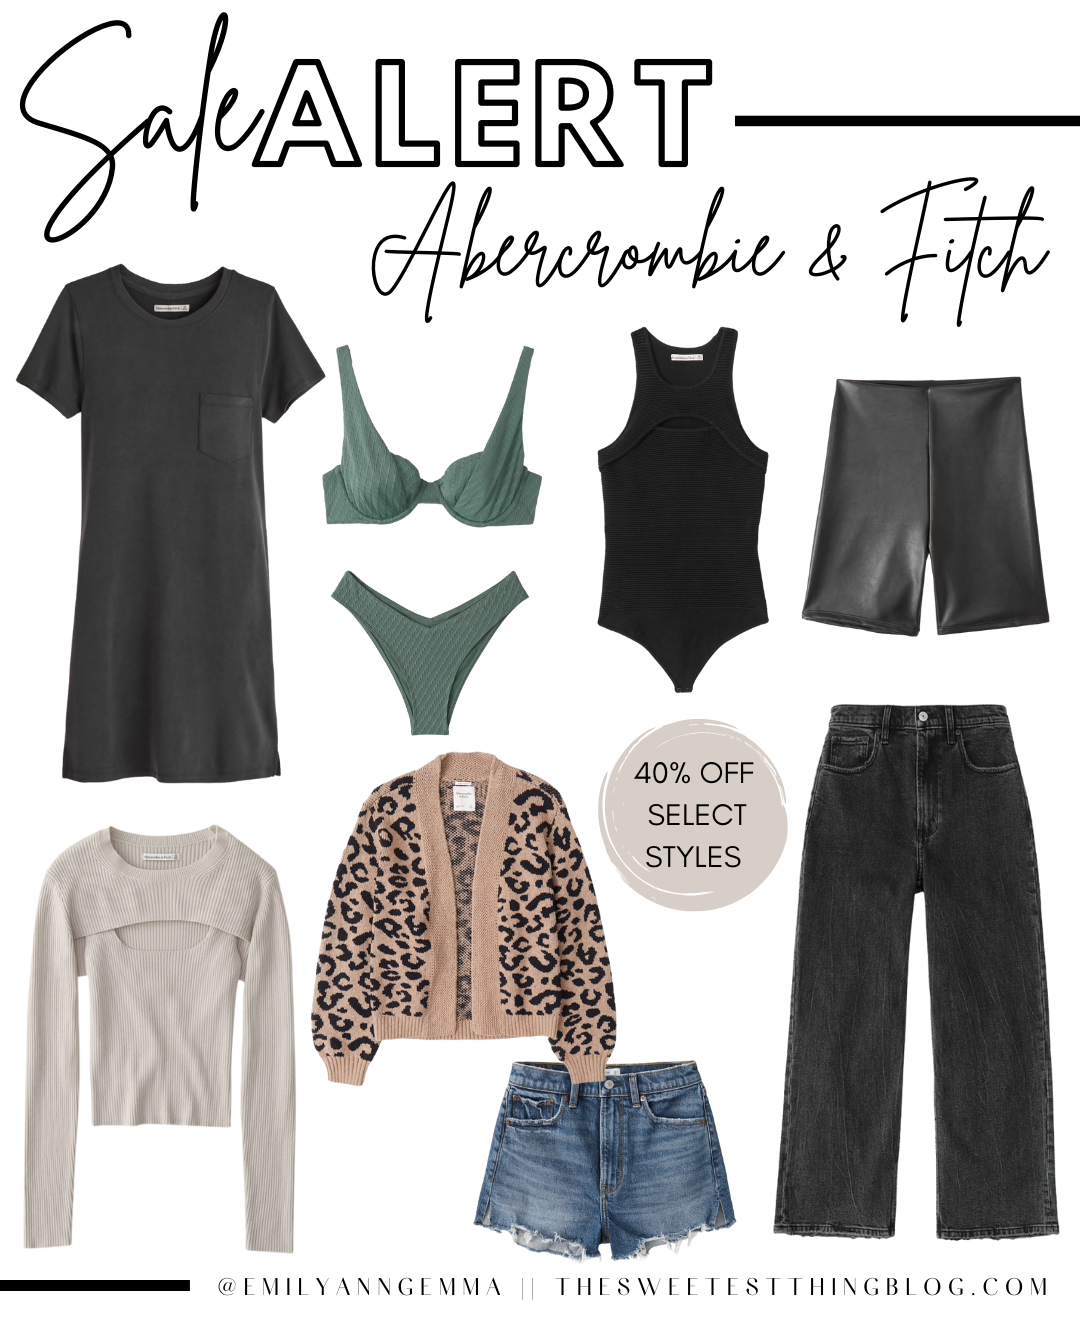 Top Labor Day Sales by popular US life and style blog, The Sweetest Thing: collage image of Abercrombie and Fitch clothing.